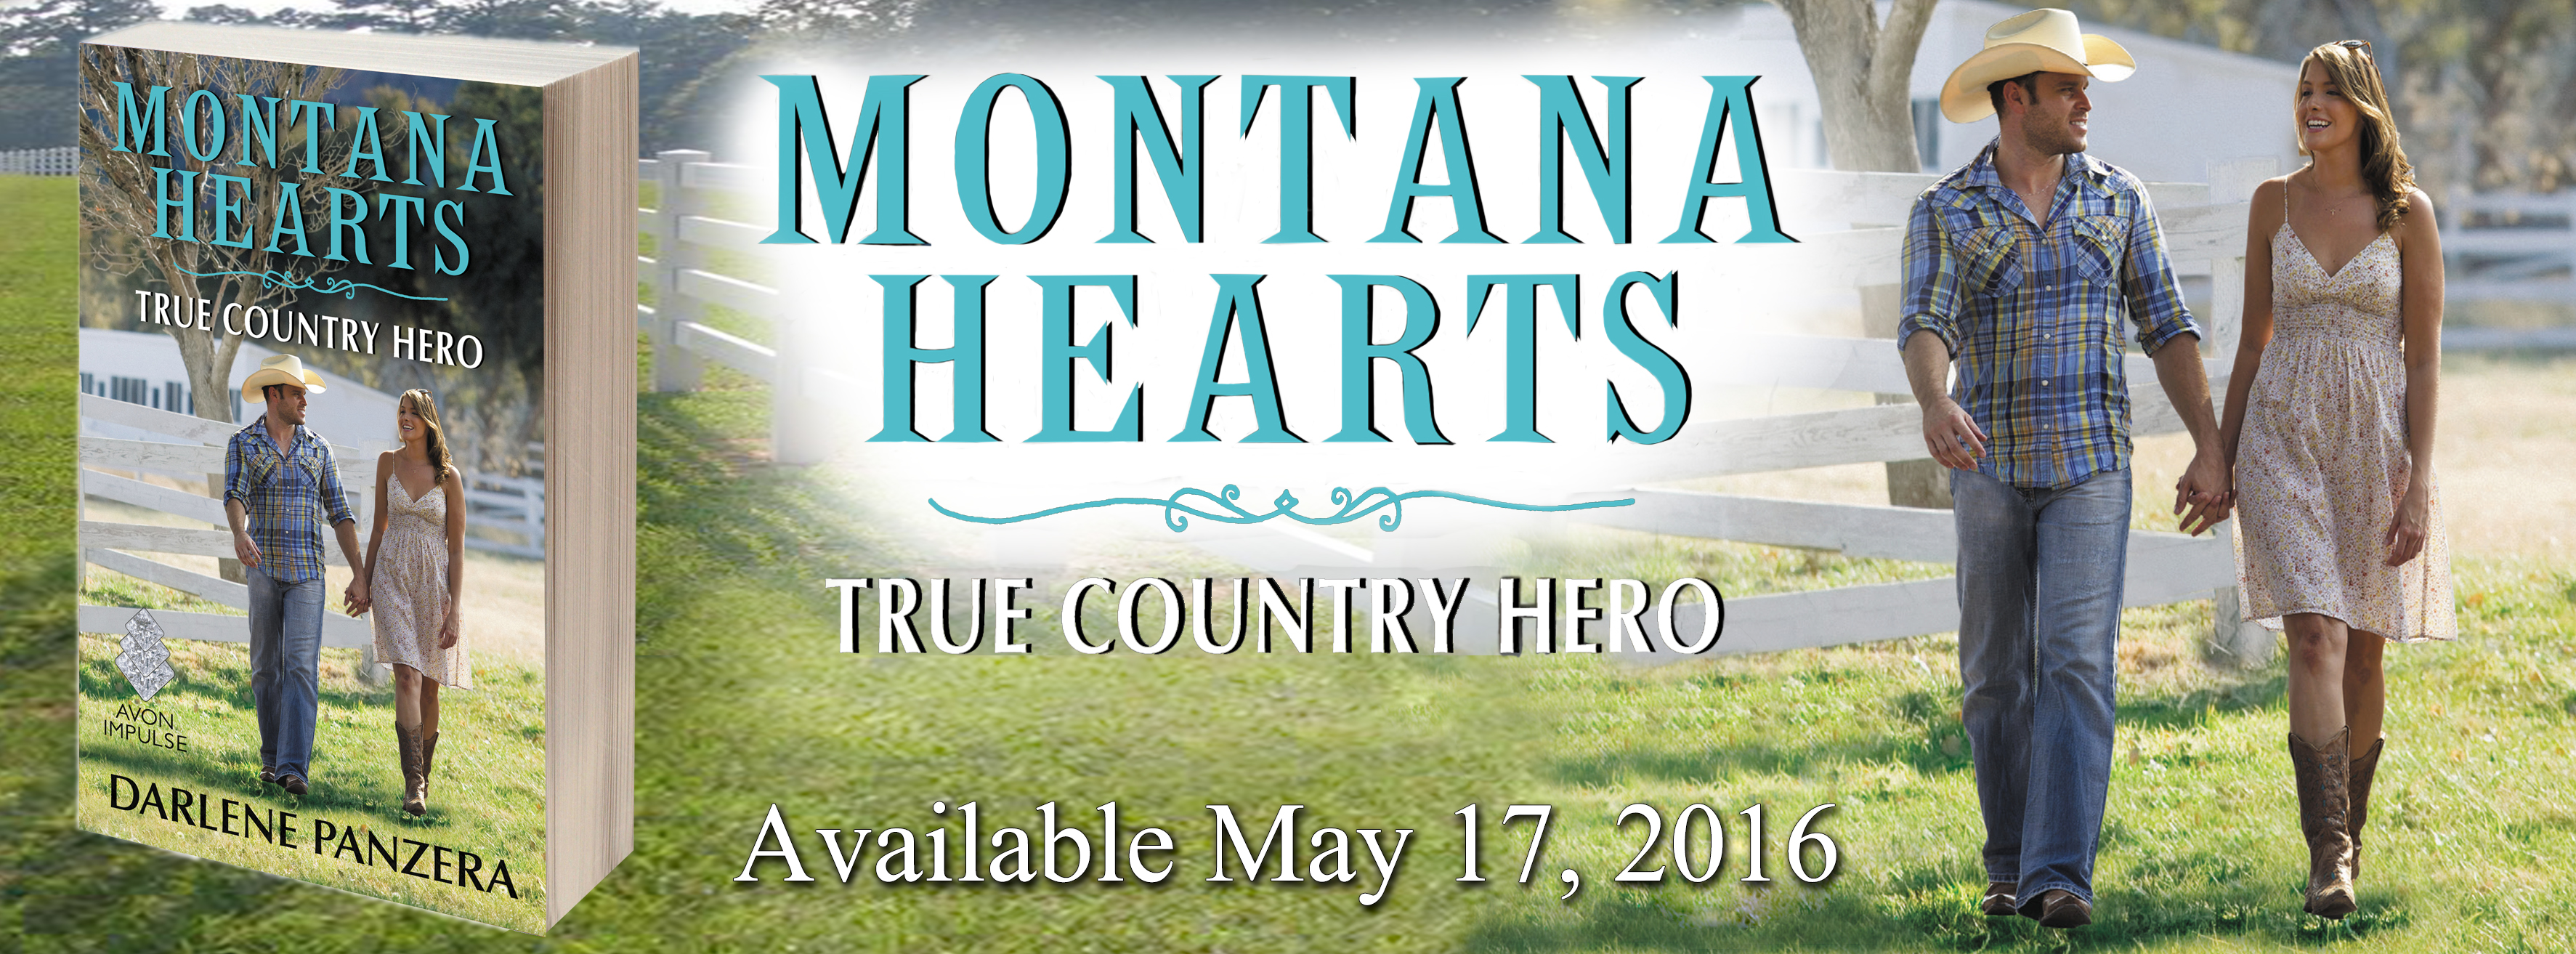 n the third heartwarming installment of Darlene Panzera's Montana Hearts series, a hot-shot rodeo star tries to win the tender heart of his biggest critic For Jace Aldridge, the chase is half the fun. The famous rodeo rider has spent most of life chasing down steers and championship rodeo belts, but after an accident in the arena, his career is put on temporary hold. When he's offered a chance to stay at Collins Country Cabins, Jace jumps at the opportunity to spend more time with the beautiful but wary Delaney Collins. Between trying to make her family's business a success, raising her daughter single-handedly, and volunteering at the local wildlife shelter, Delaney doesn't have time for love. Even though she's determined to not let the handsome cowboy under her skin, Delaney can't deny how much she looks forward to every day with him. She's determined to be friends with the handsome cowboy, nothing more, even though Delaney's heart flutters every time he draws near. But all is not well in Fox Creek and when a violent poaching ring escalates out of control, Delaney must trust that Jace is the true country hero she hopes he is. An Avon Romance